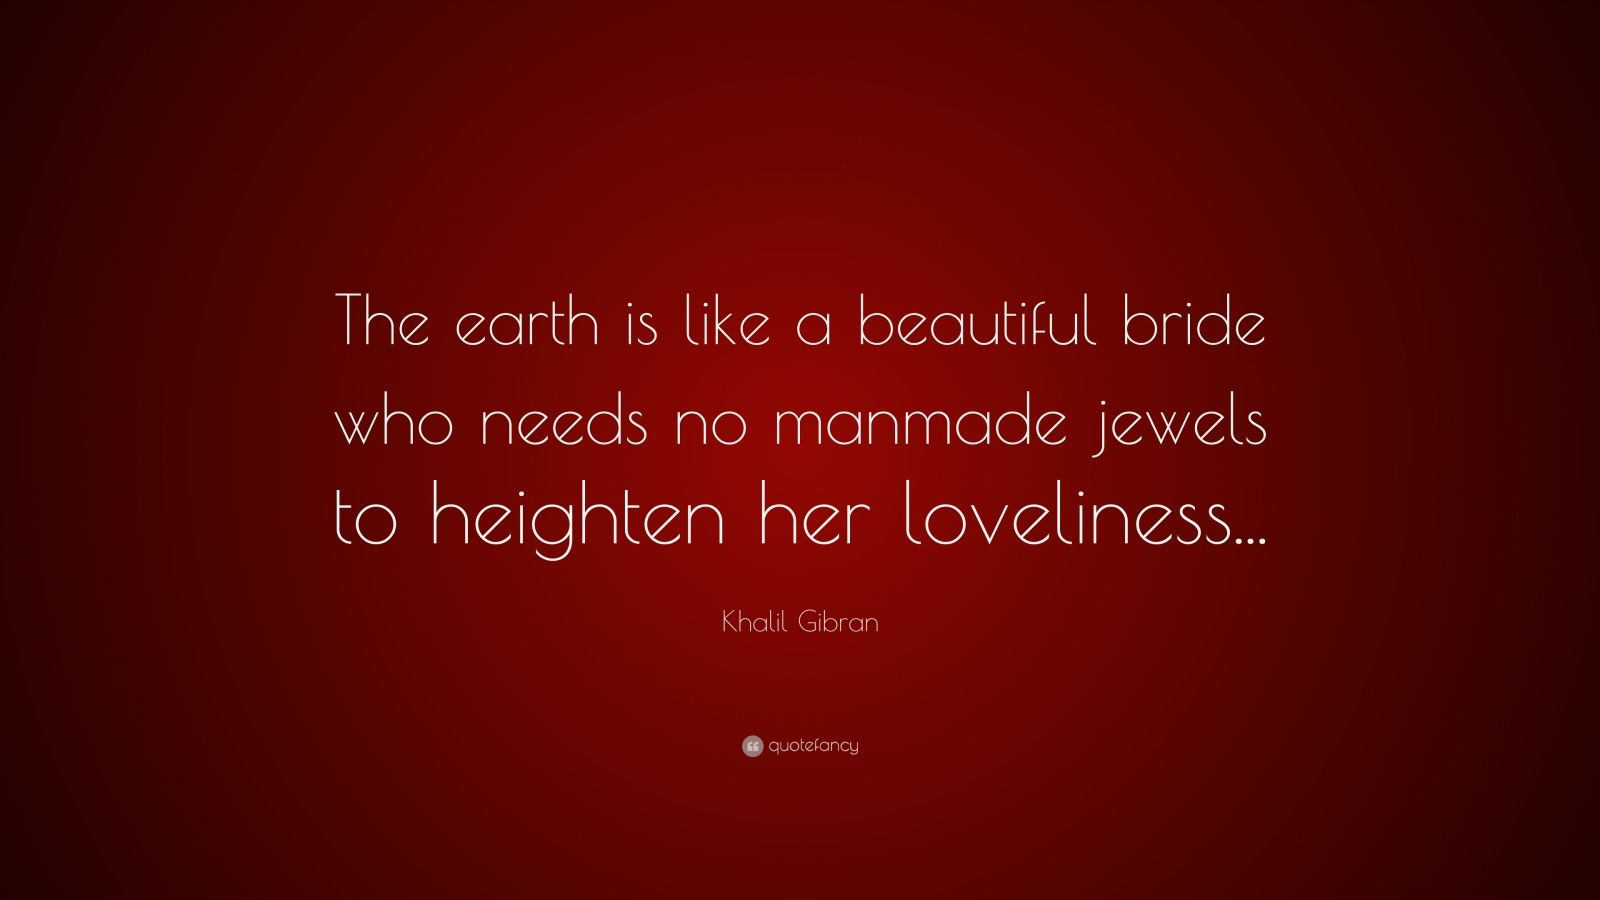 """Khalil Gibran Quote: """"The earth is like a beautiful bride who needs no manmade jewels to heighten her loveliness..."""""""